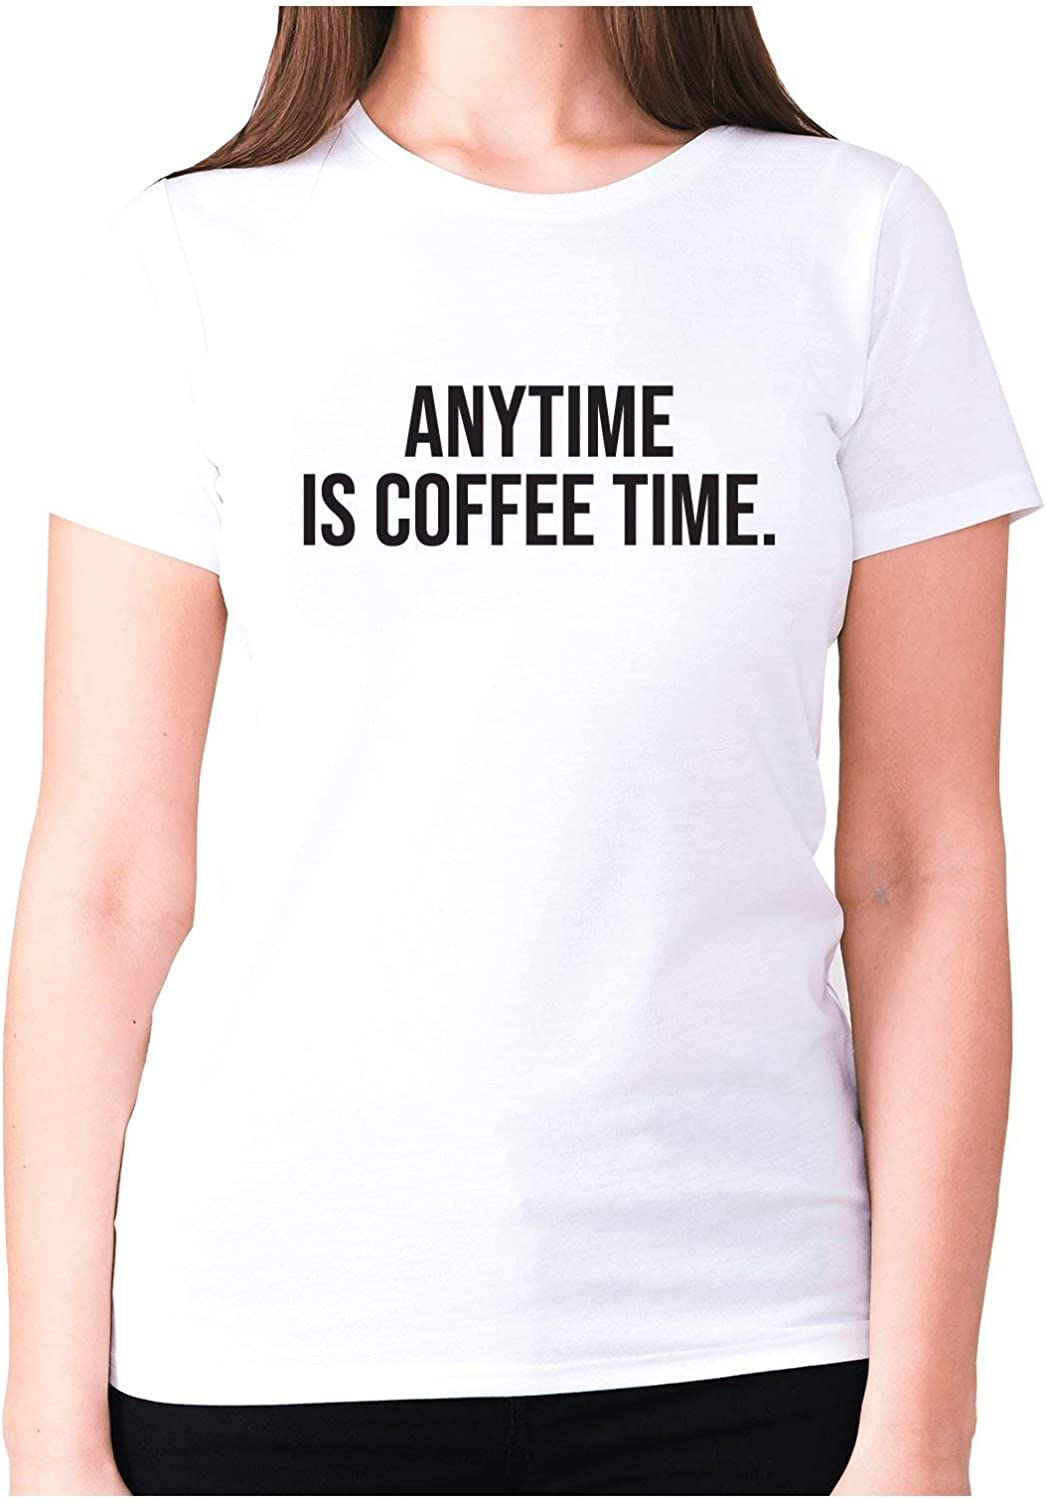 Anytime Is Coffee Time funny T shirts mens humour womens sarcastic slogan top